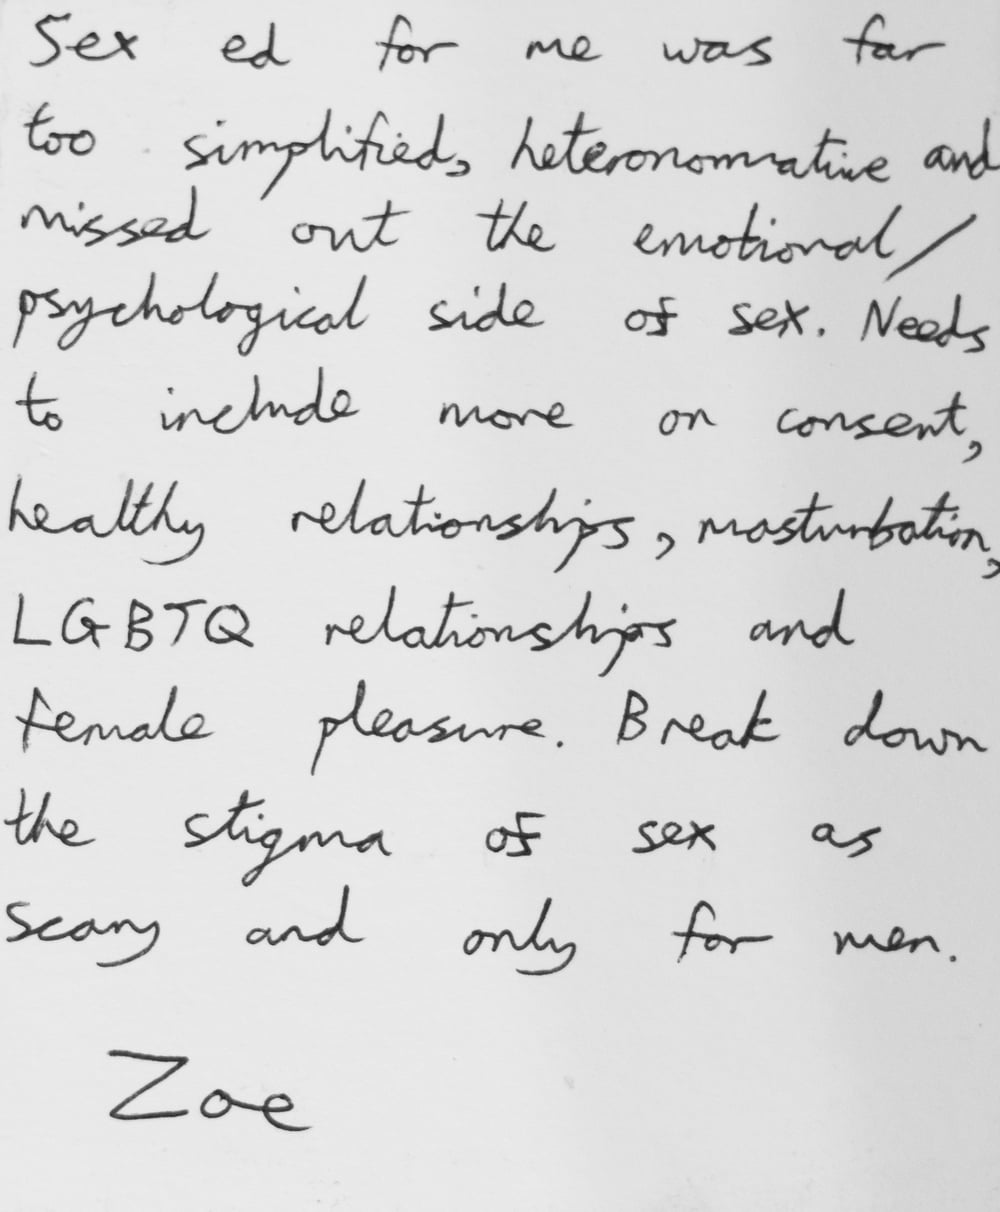 Sex ed for me was far too simplified, heteronormative and missed out the emotional/psychological side of sex. Needs to include more on consent, healthy relationships, masturbation, LGBTQ relationships and female pleasure. Break down the stigma of sex as scary and only for men. -Zoe